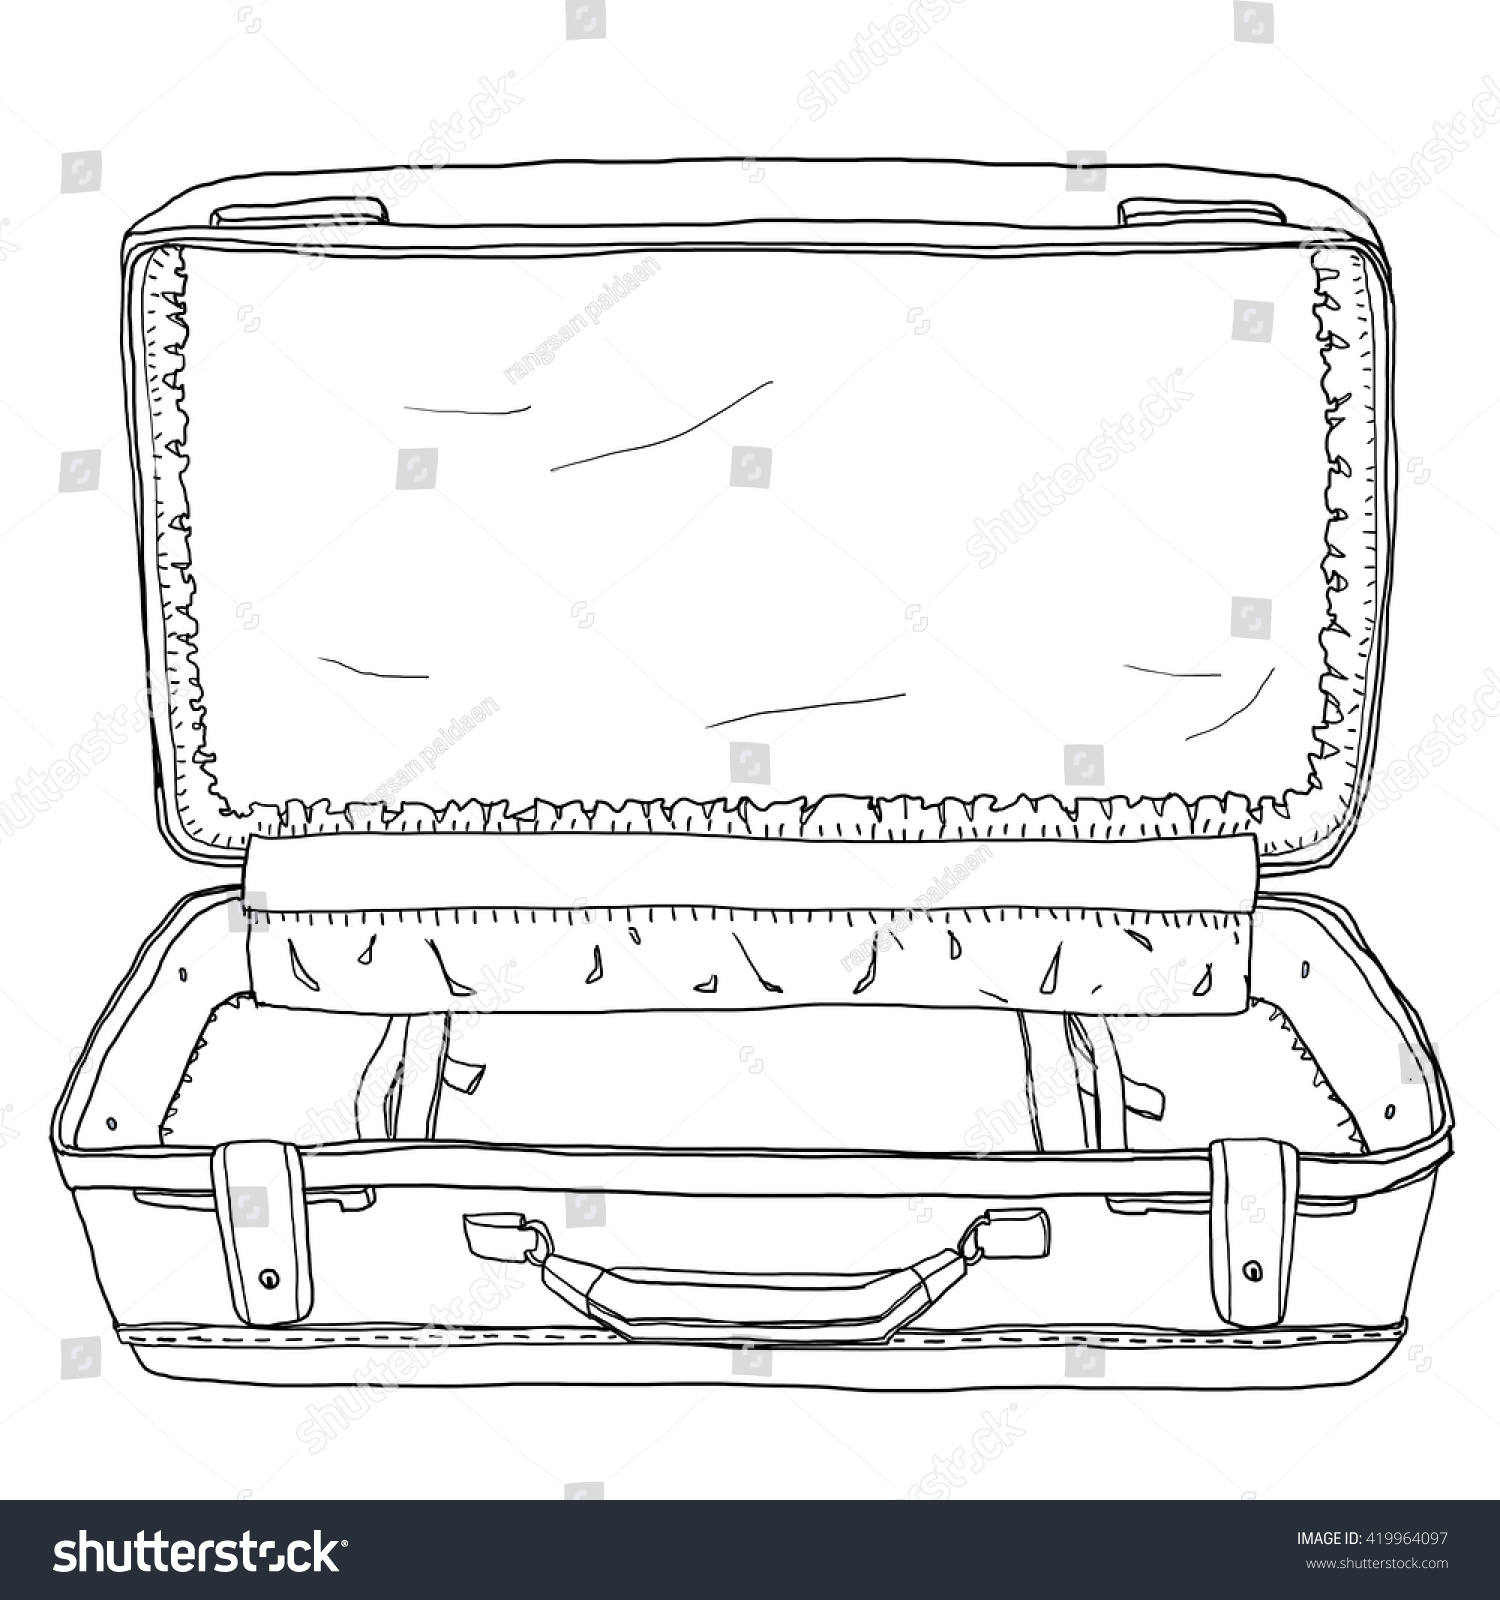 Vintage luggage suitcases open empty cute stock illustration vintage luggage suitcases open is the an empty cute illustration pronofoot35fo Images